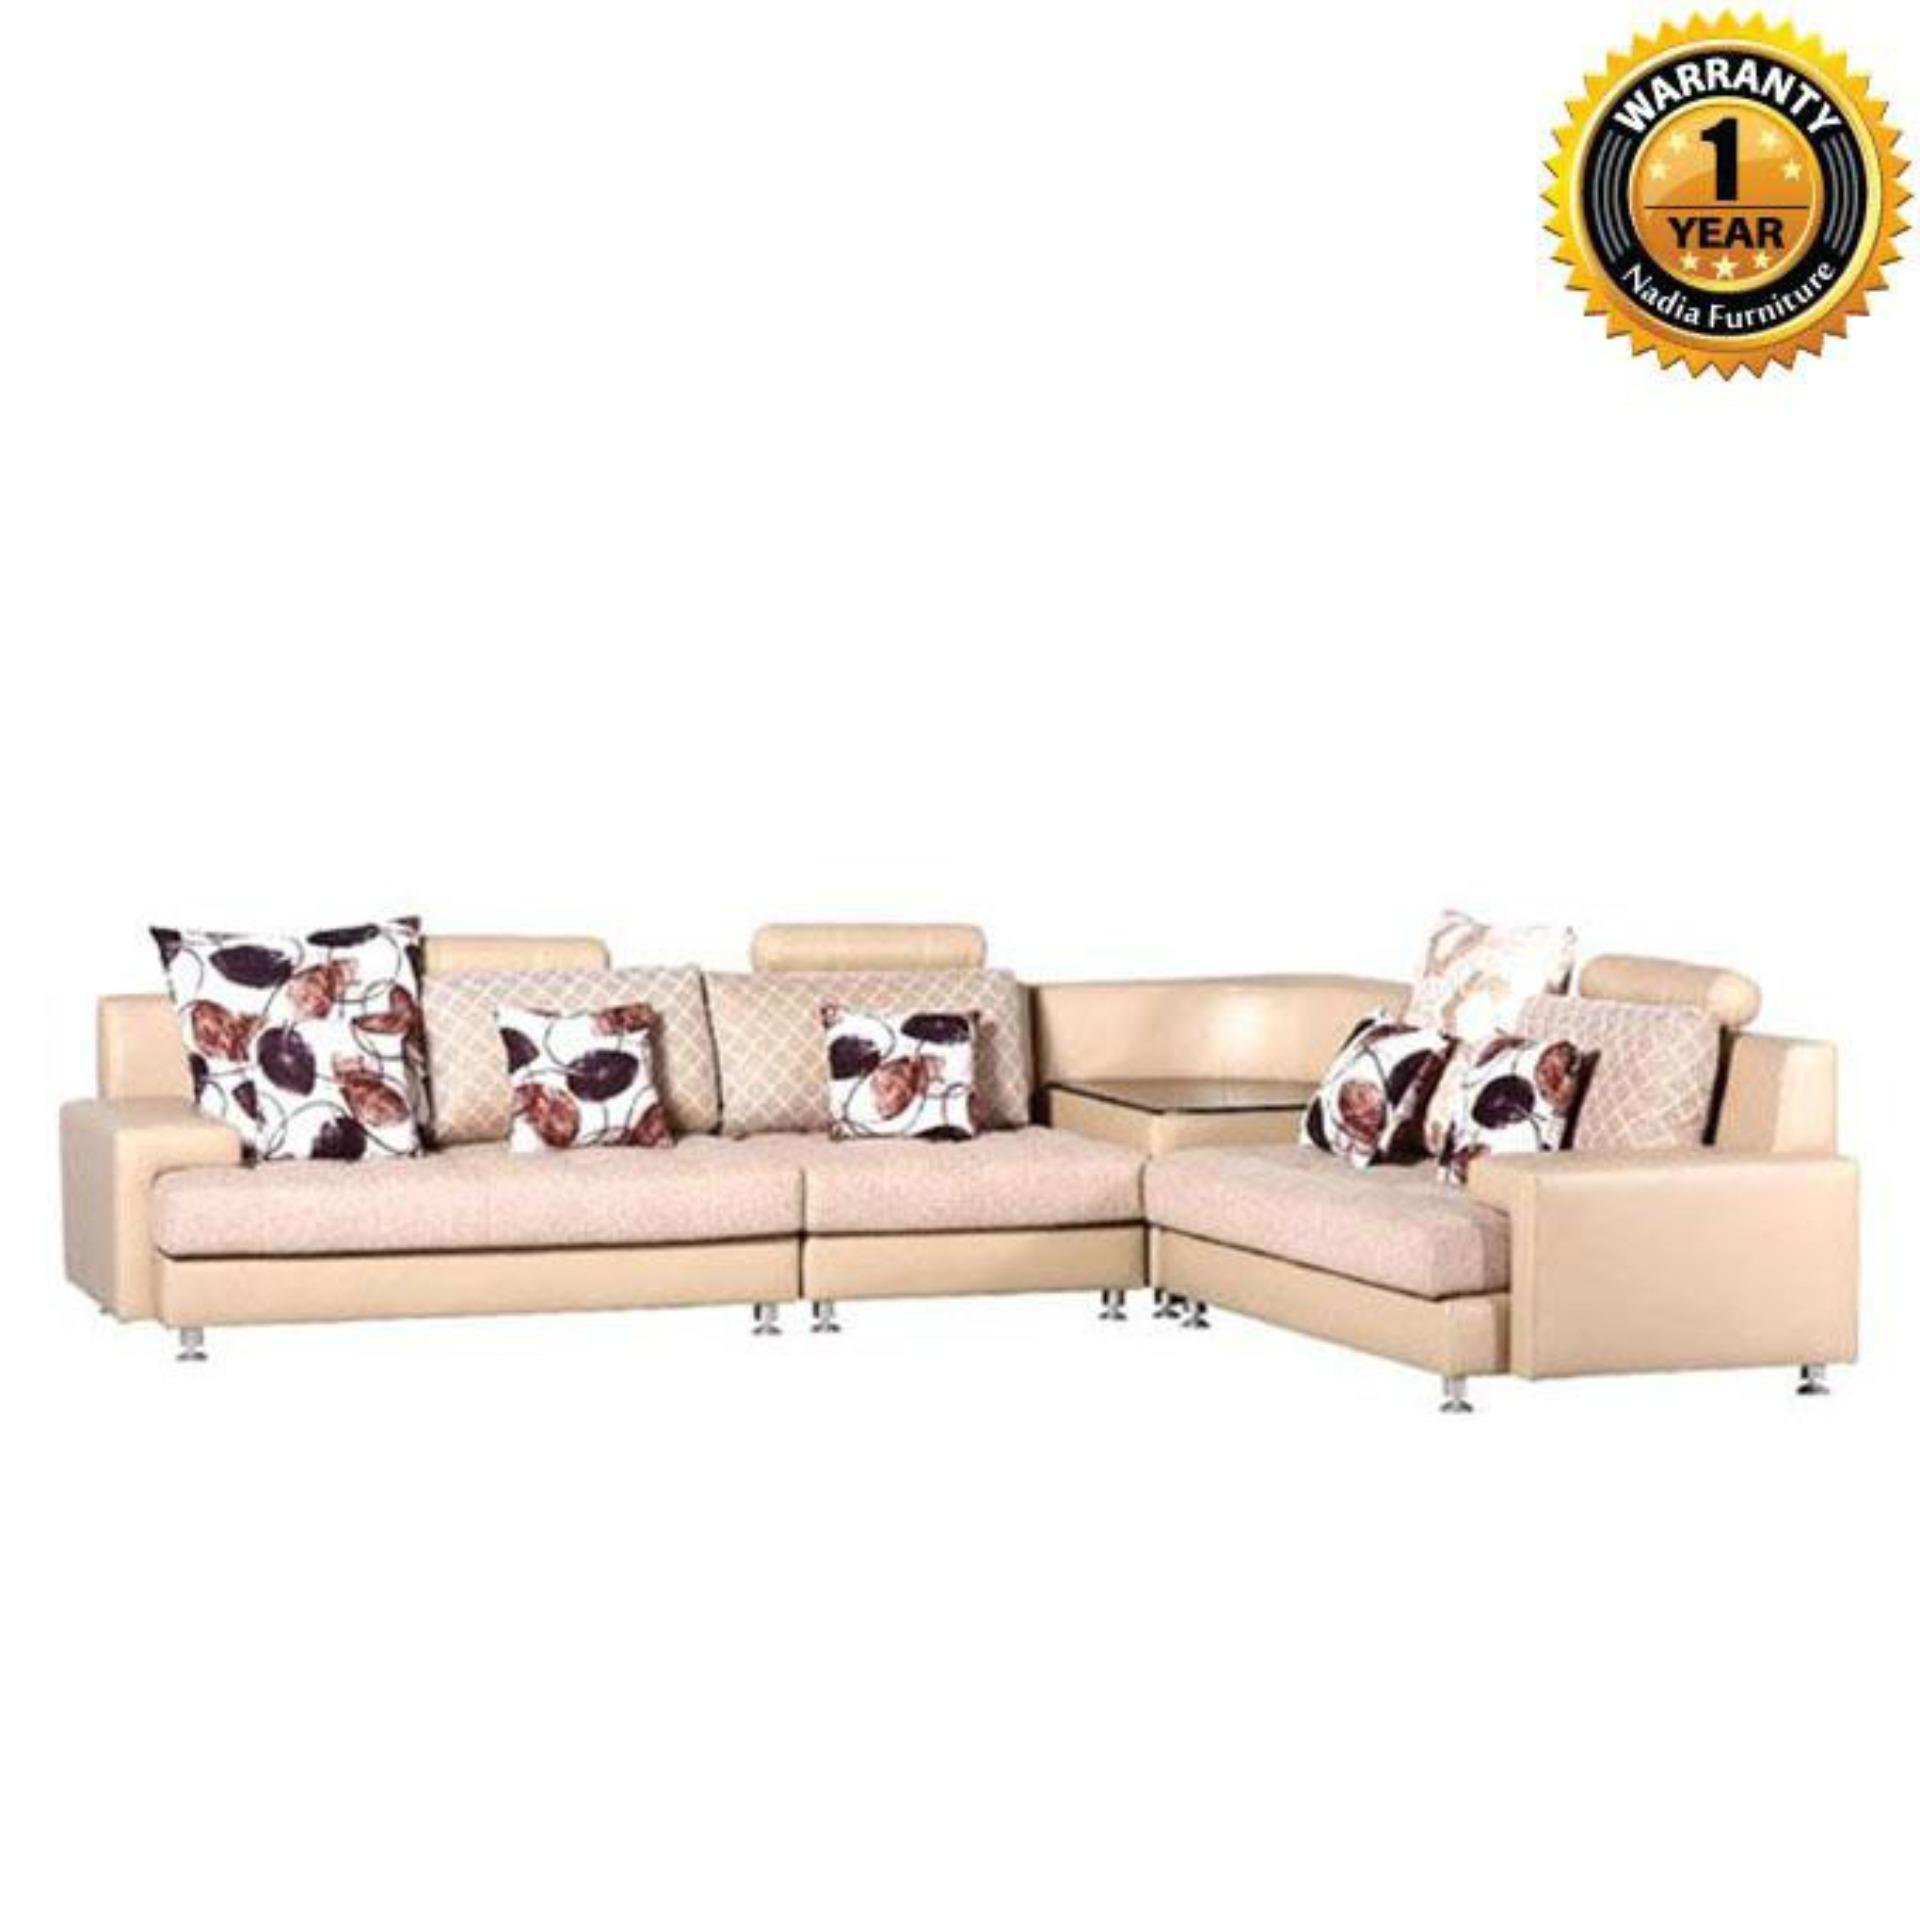 Outstanding Nfl Ss 0339 4 Amazon Corner Sofa Beige Download Free Architecture Designs Embacsunscenecom